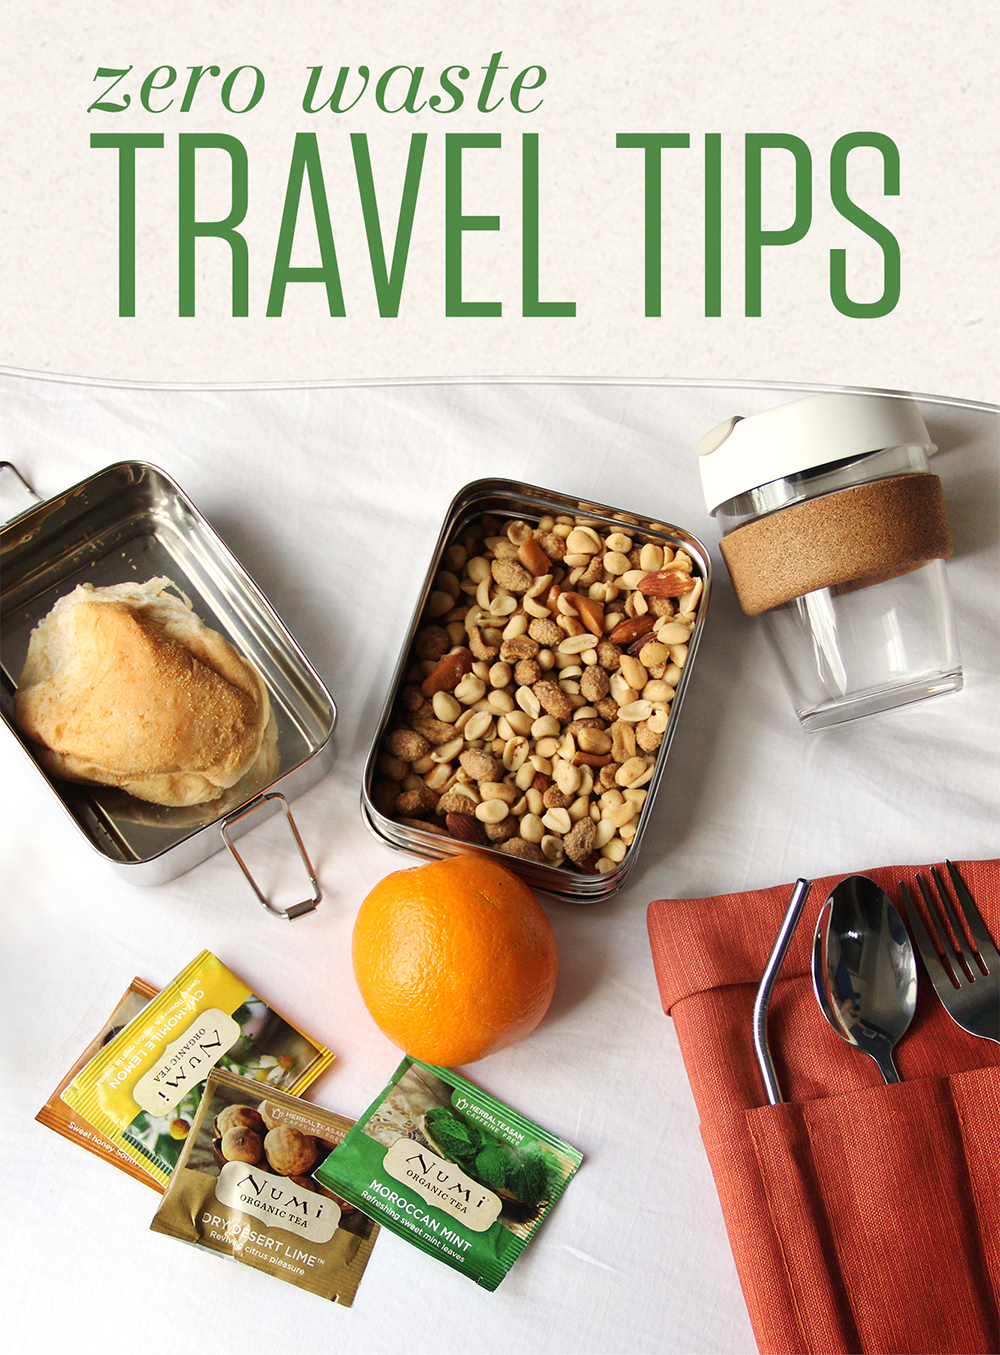 With a little planning and a few key items, you can tread lightly even when traveling abroad.